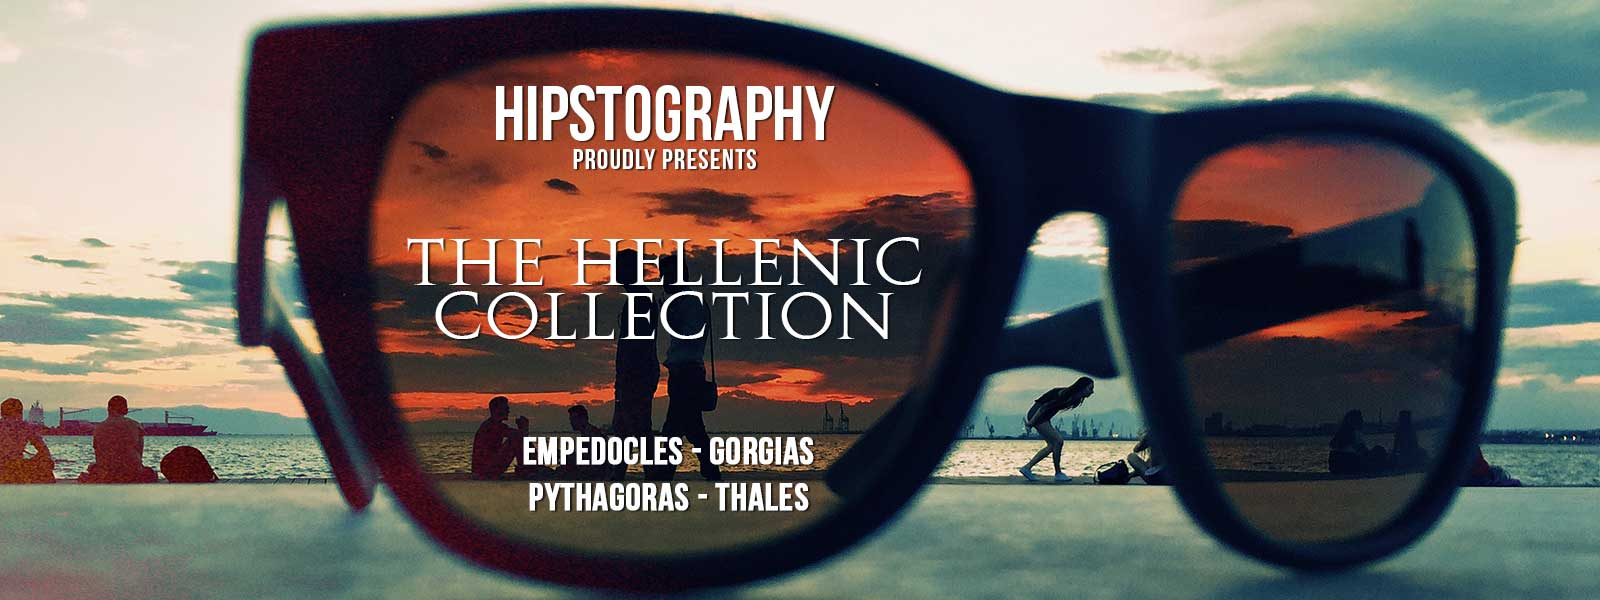 The-Hellenic-Collection-banner-article